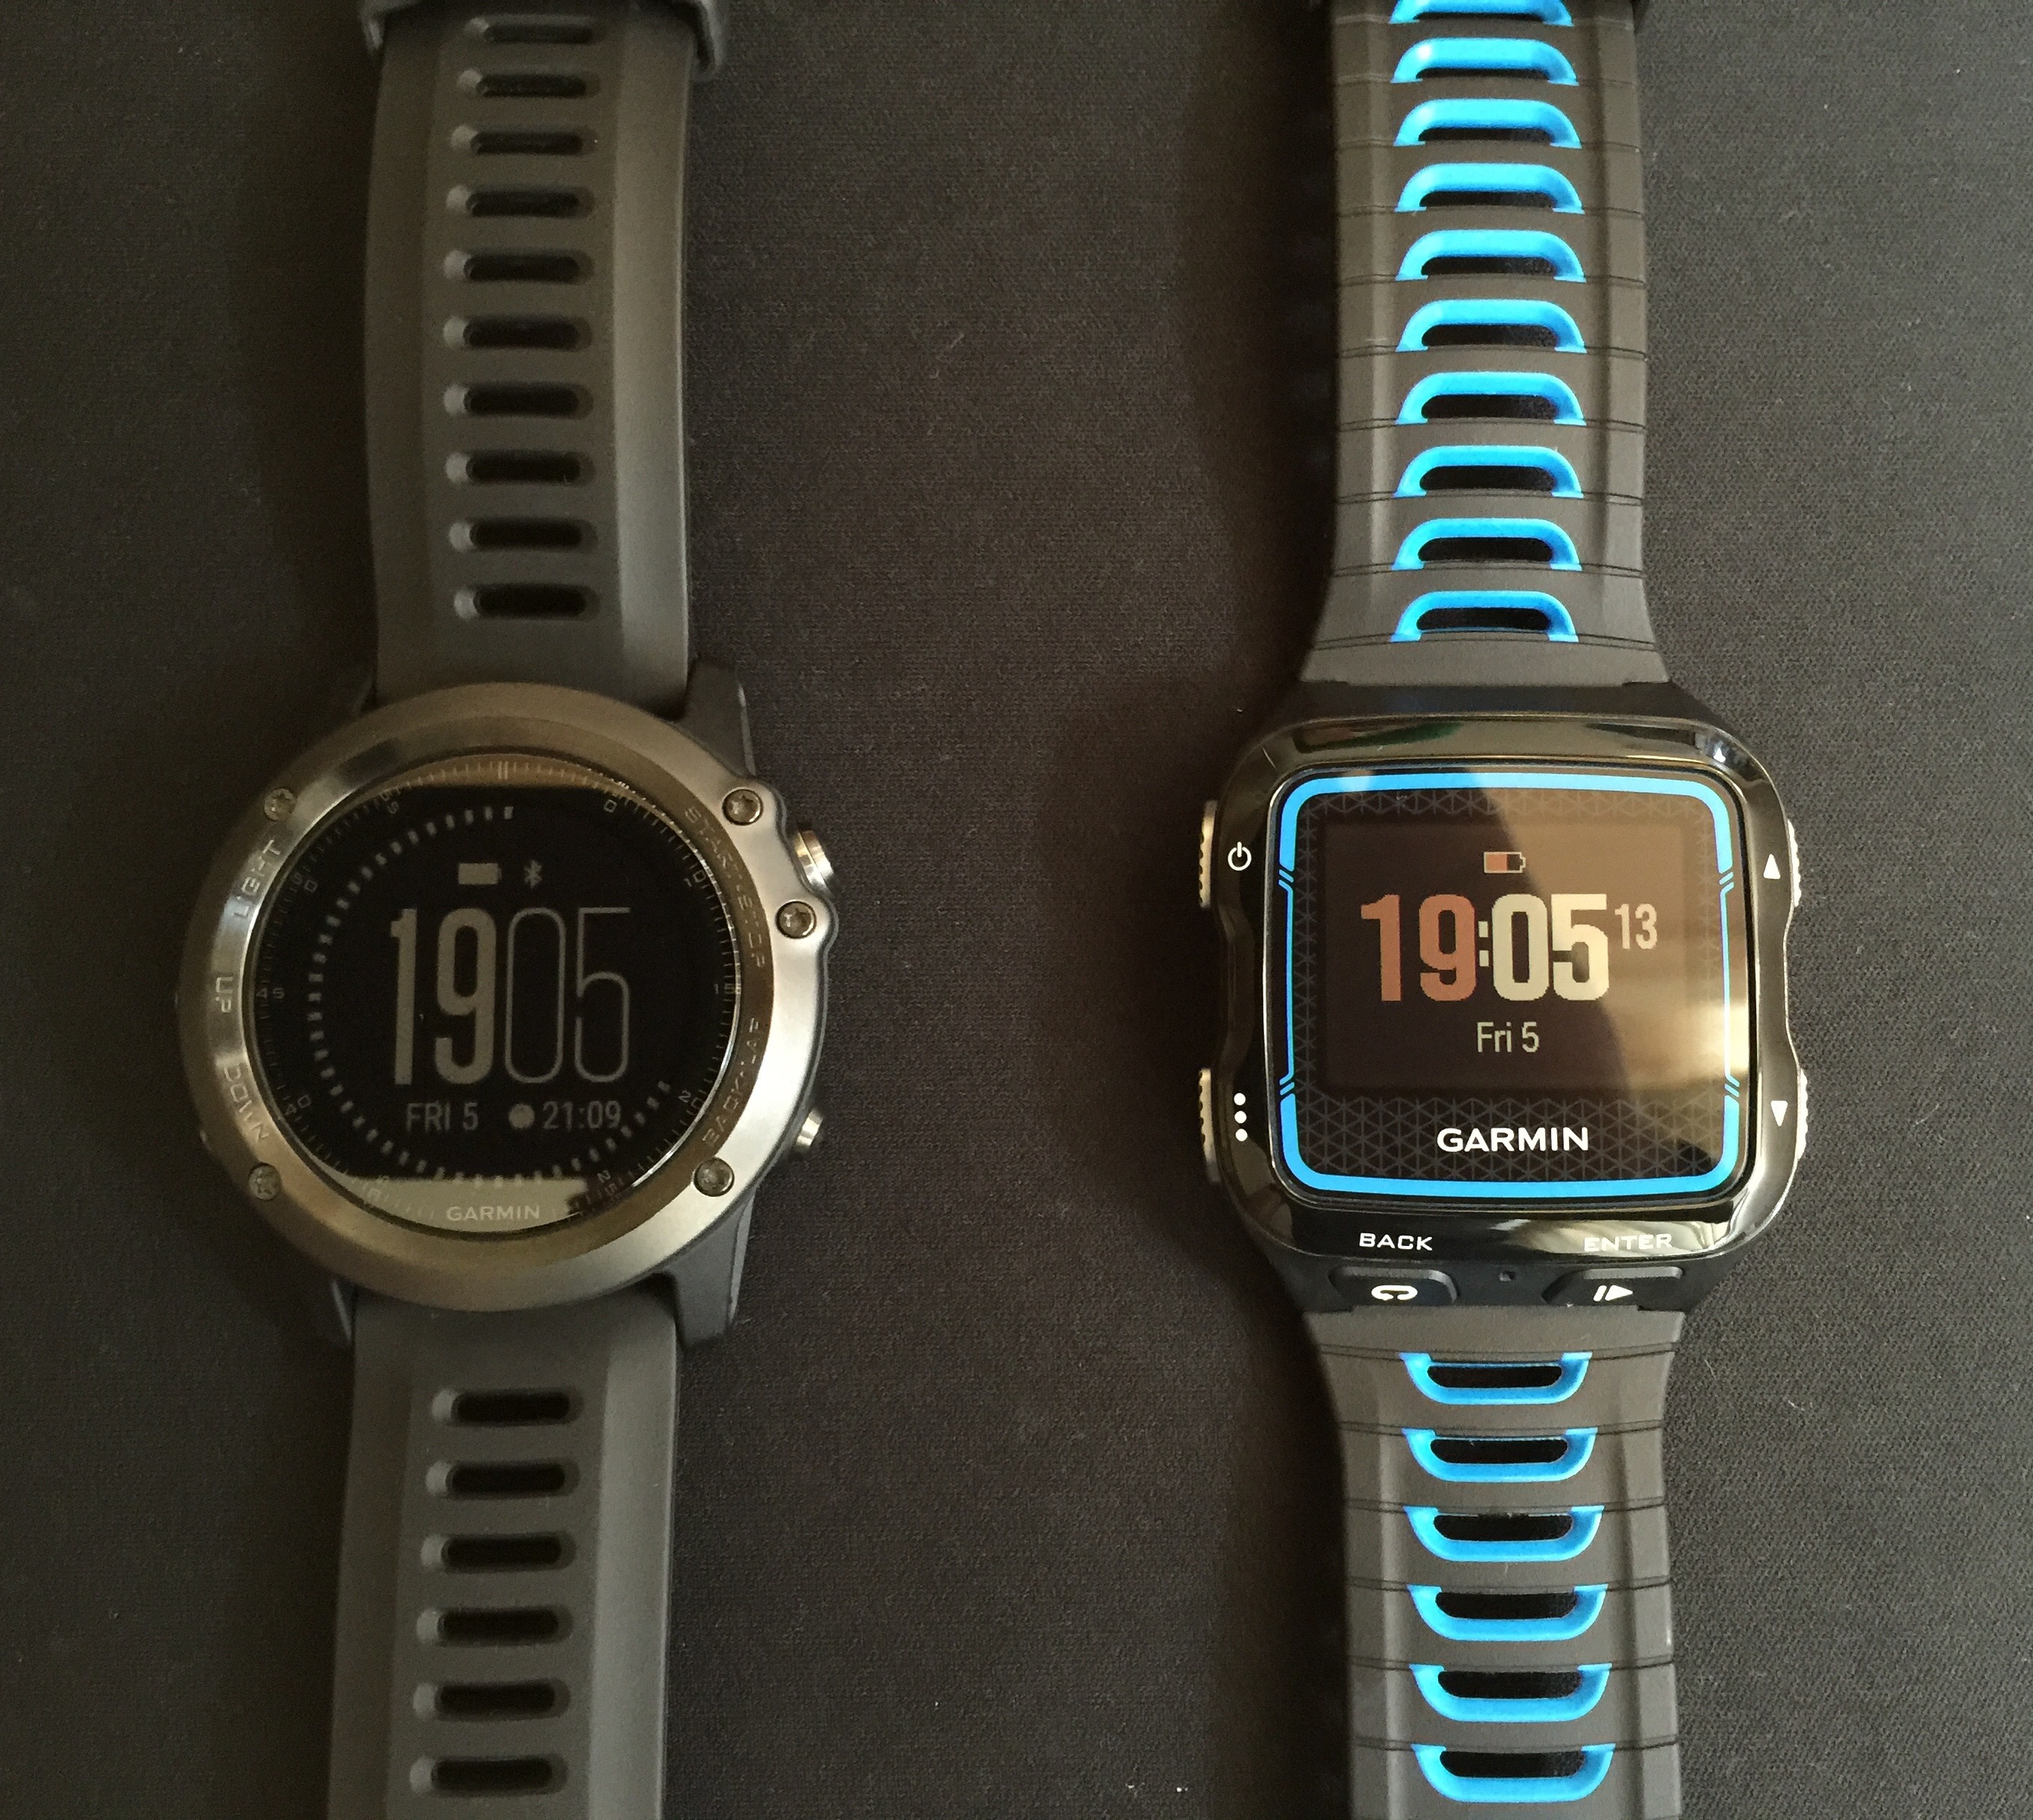 Garmin Fenix 3 Vs 920xt Running Cycling And Tech Reviews